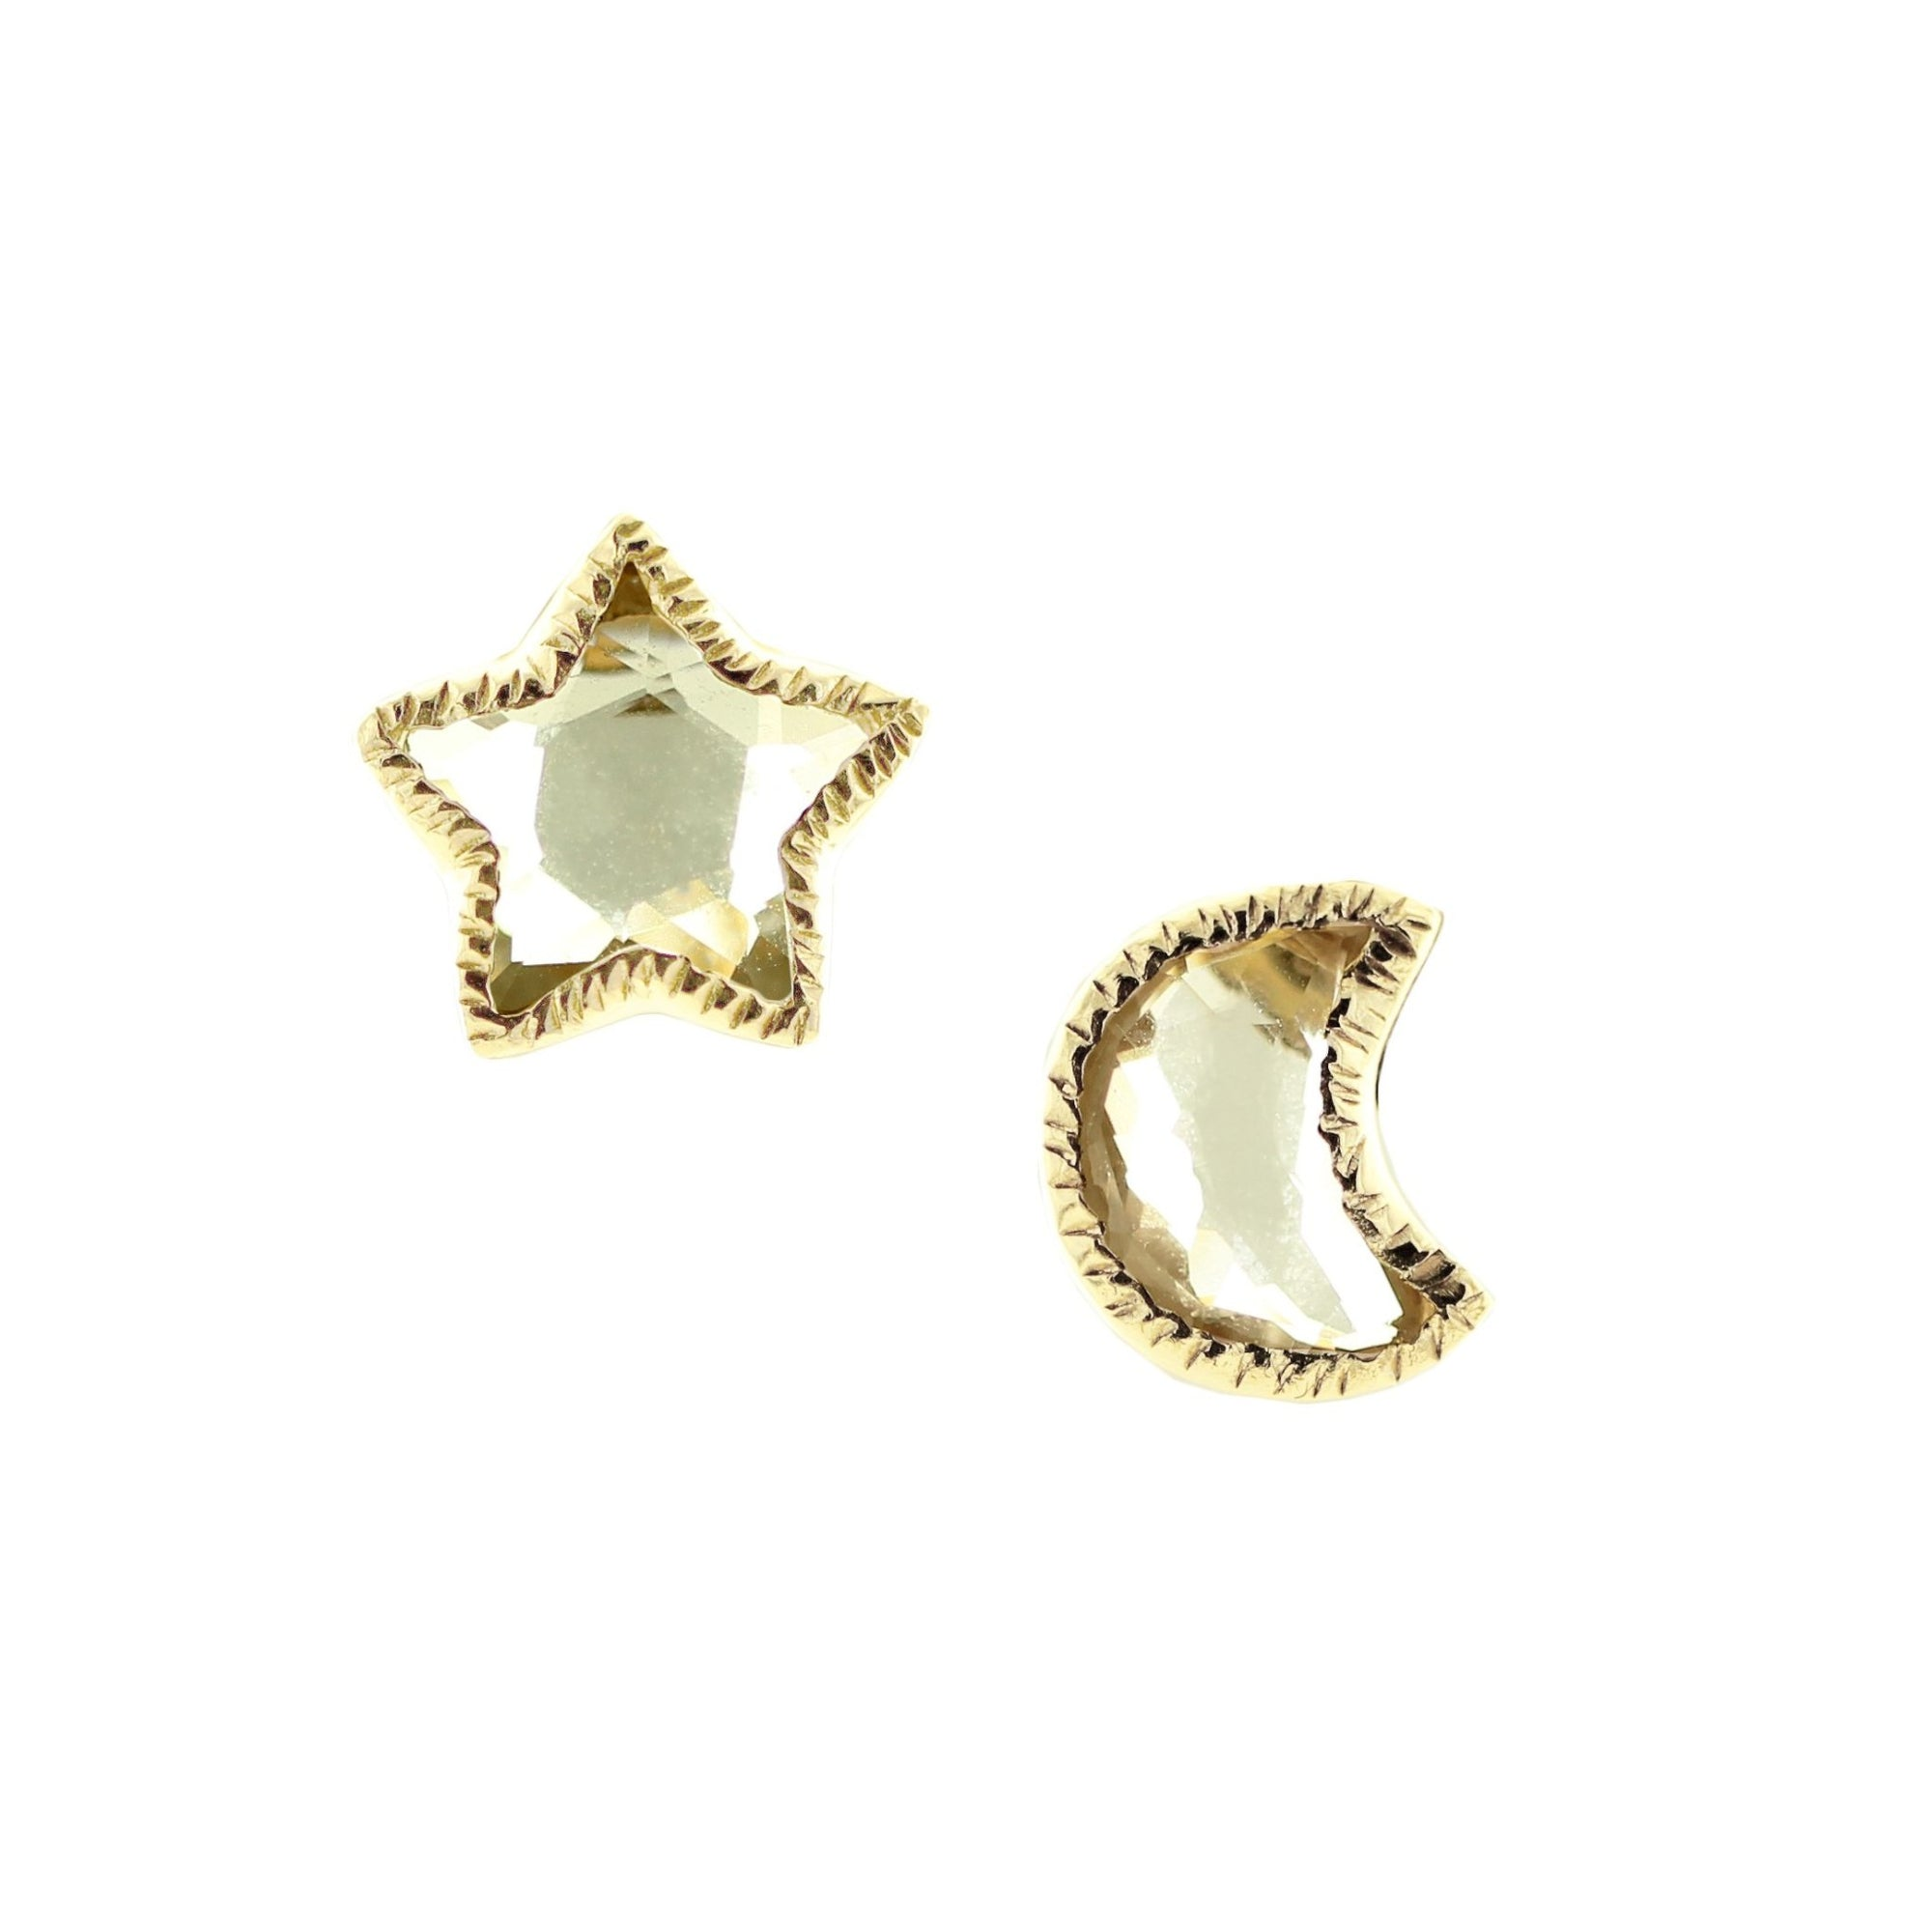 Shoot For The Stars Studs - White Topaz & Gold - SO PRETTY CARA COTTER